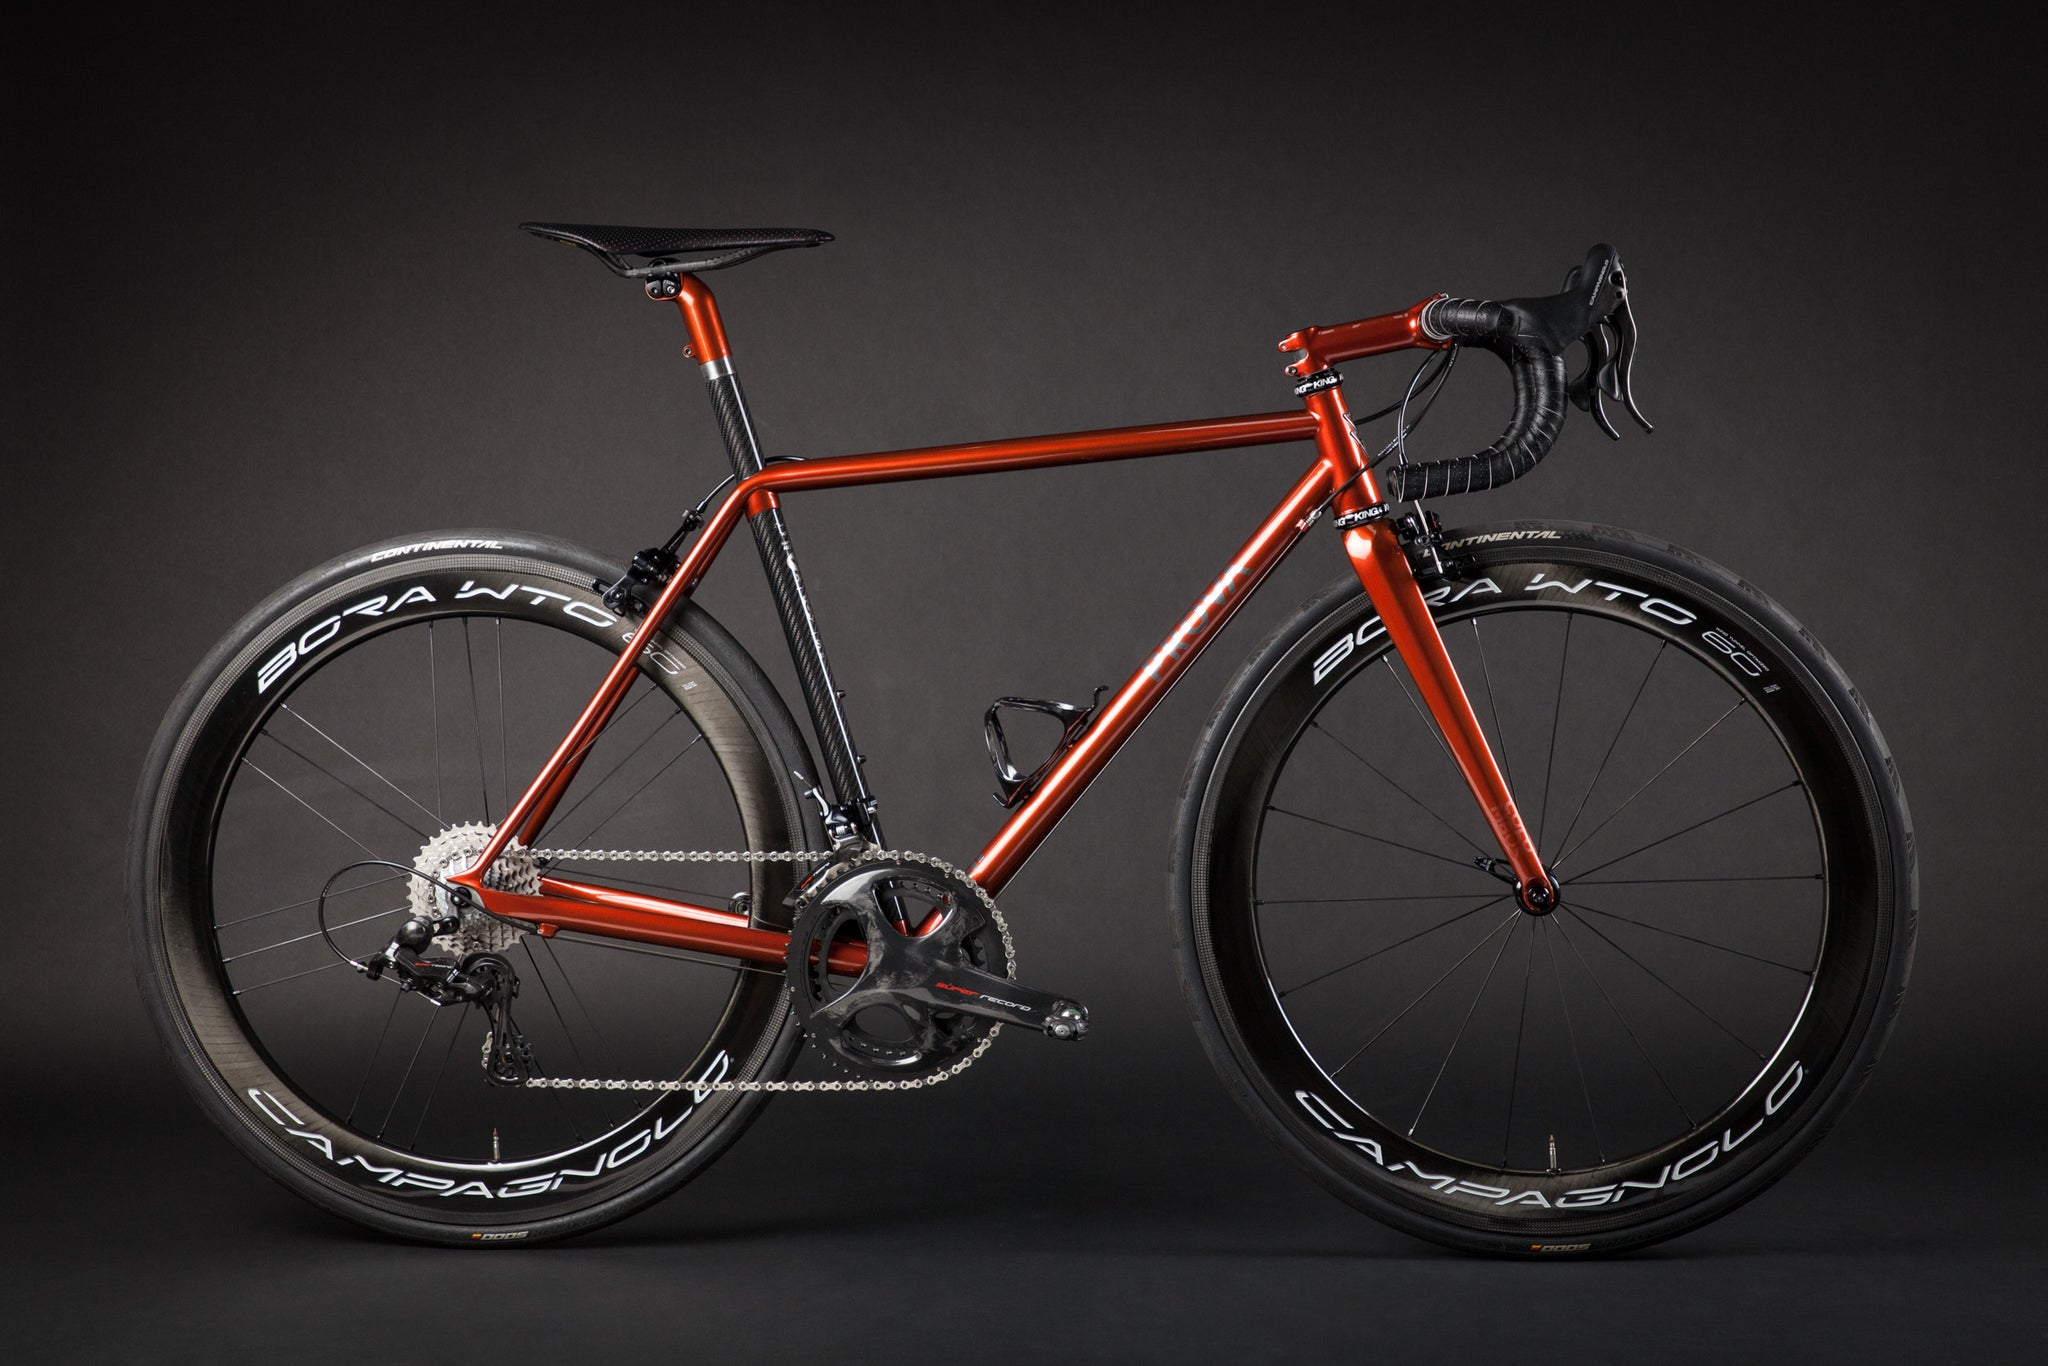 chad's prova speciale bike profile